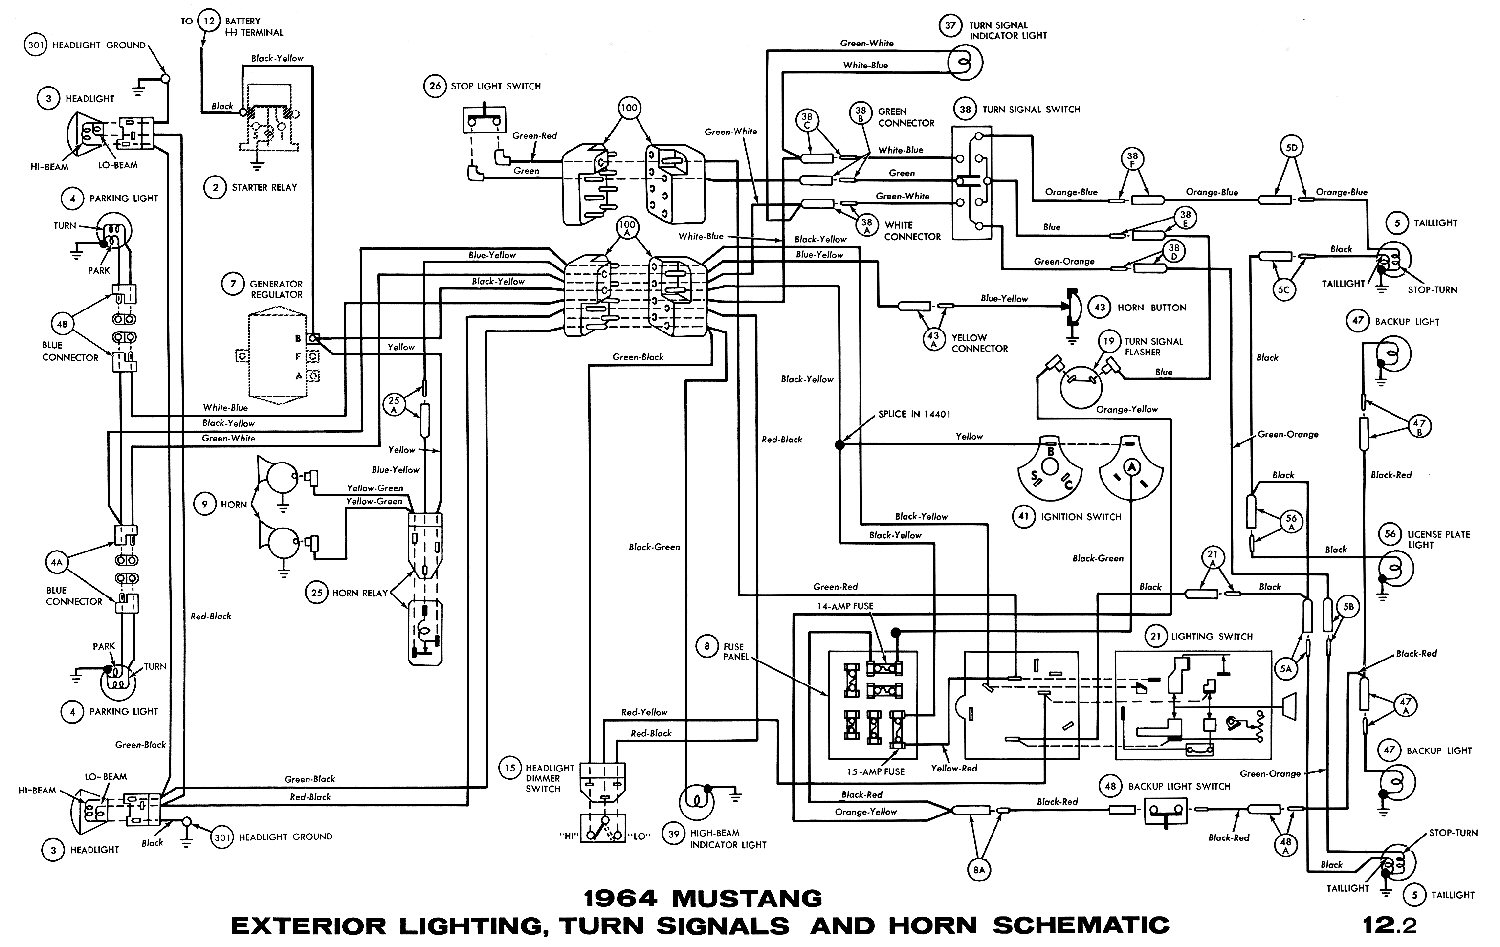 1964i 1969 mustang wiring diagram 1969 ranchero wiring diagram \u2022 wiring 1965 mustang wiring diagram free at honlapkeszites.co